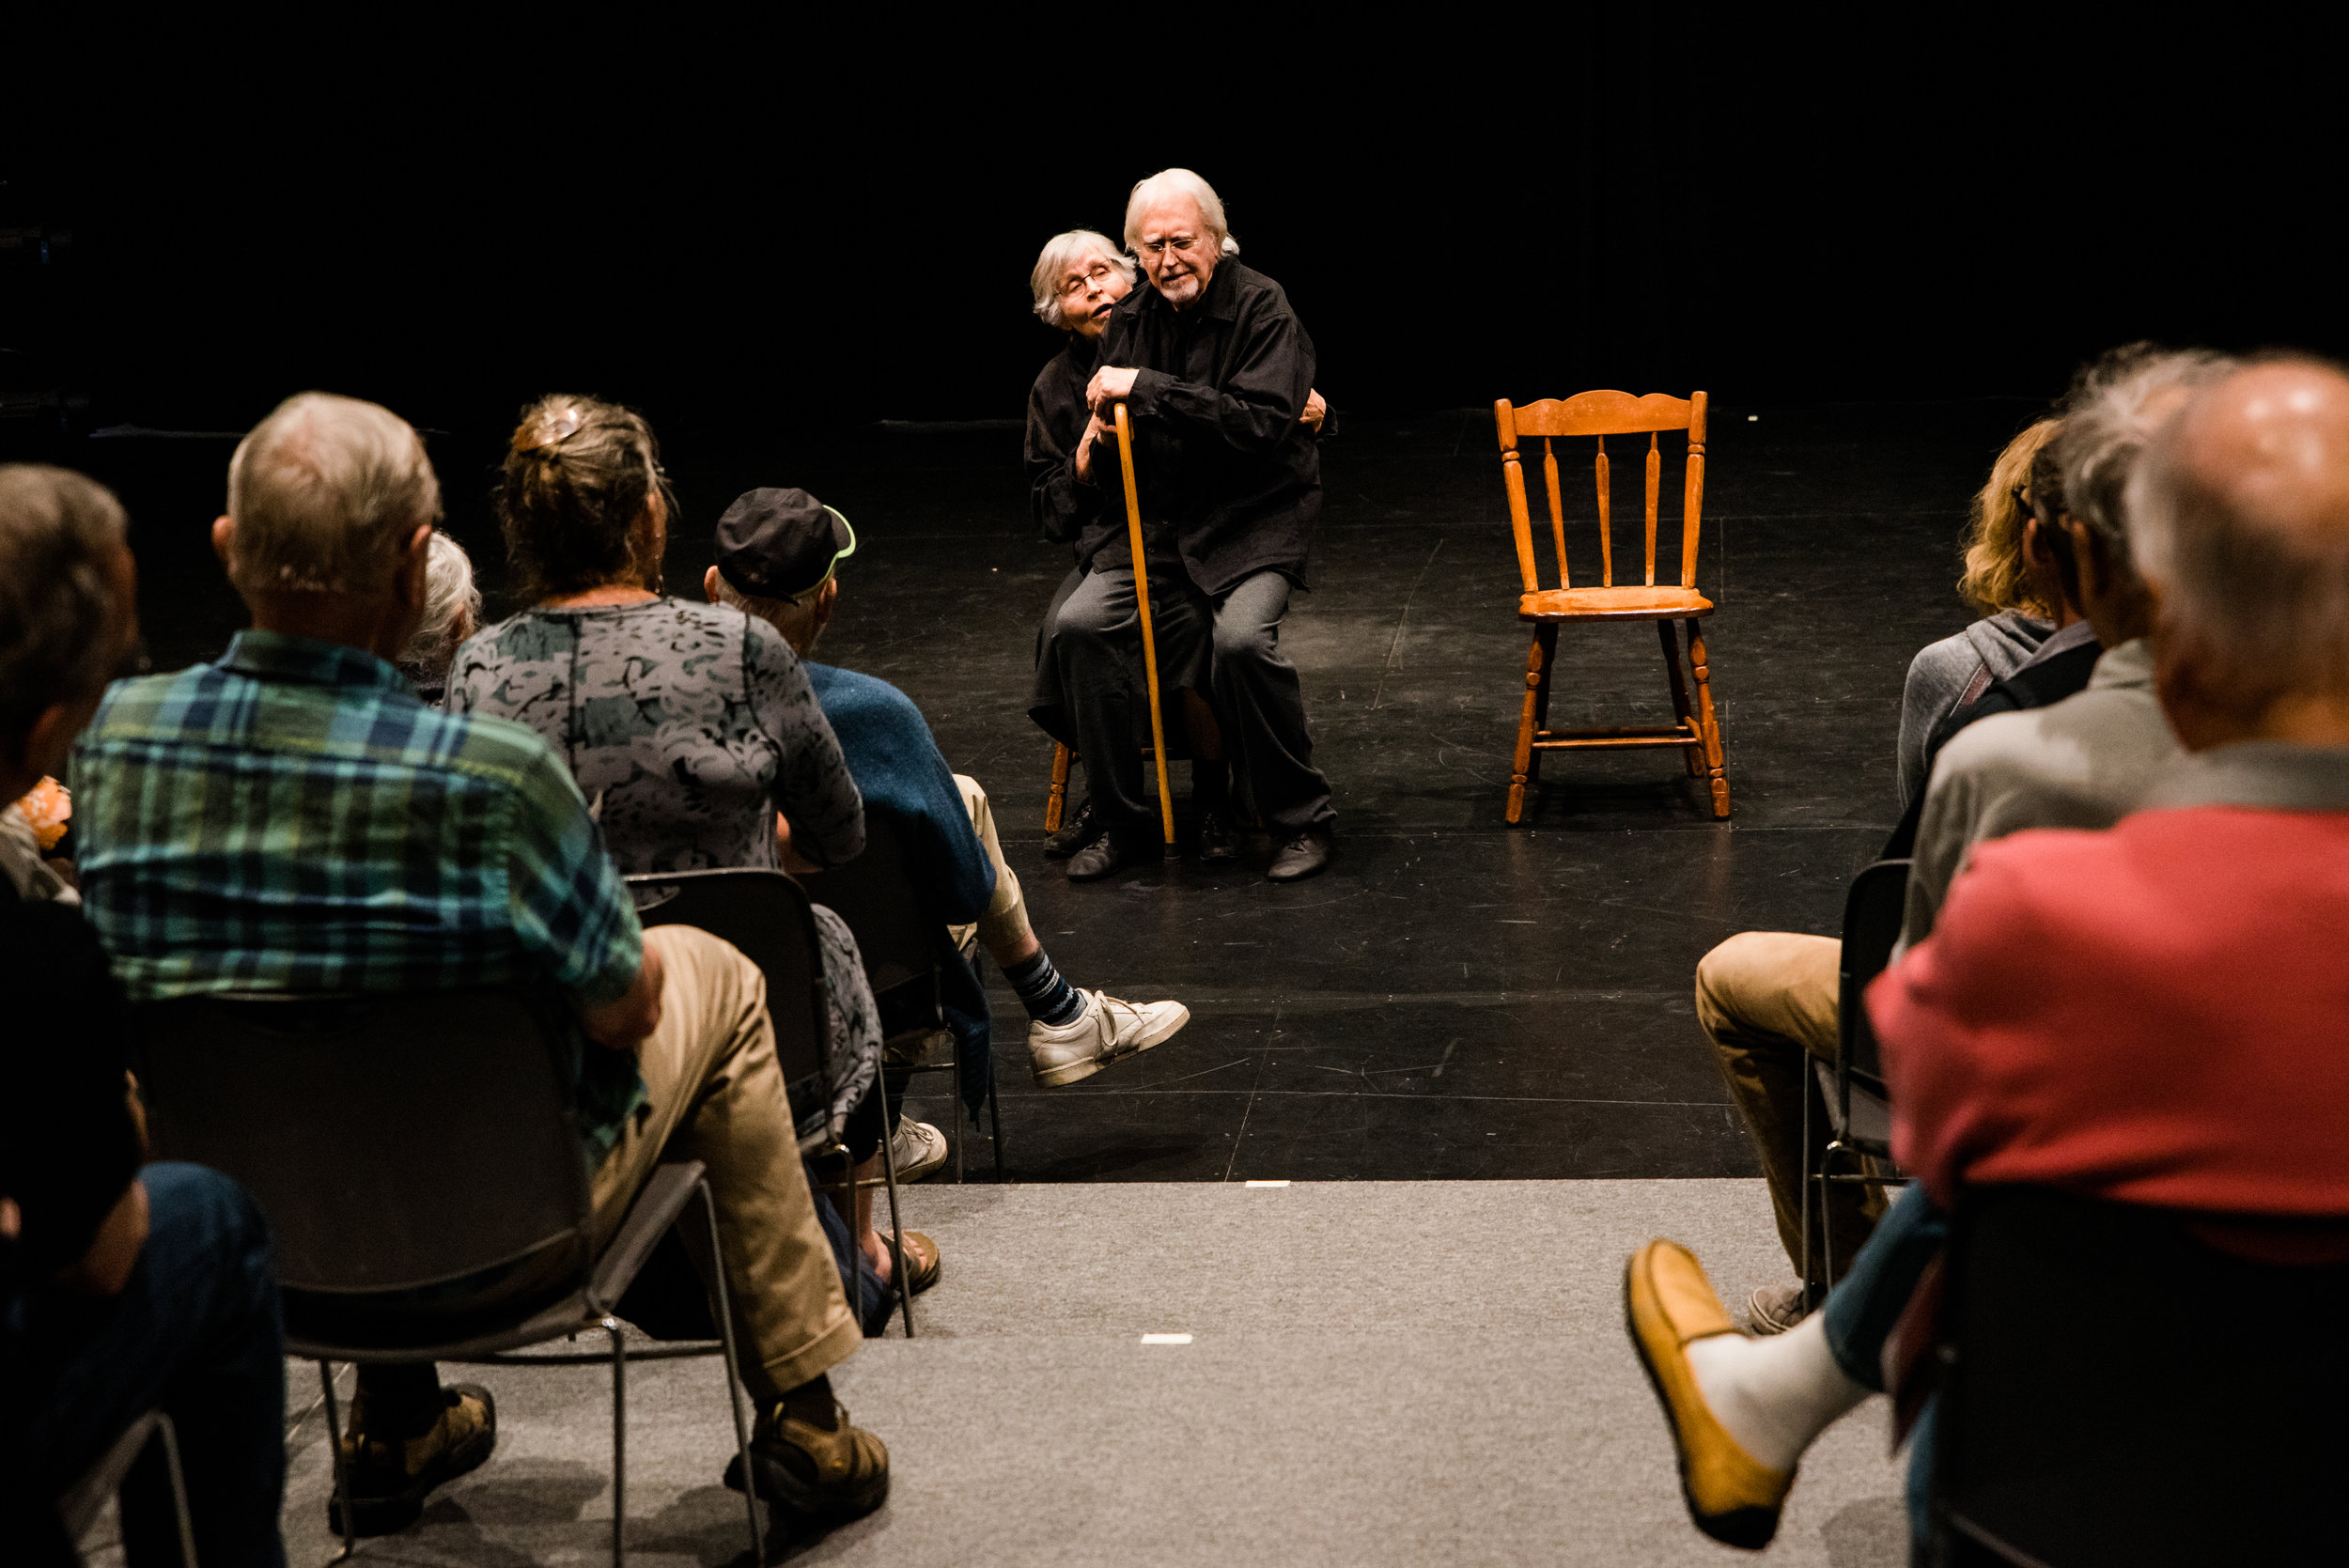 Ionesco's The Chairs - The Chairs performed at PS21 in Chatham NY in 2018, and was performed by Ted Pugh and Fern Sloan, with Ragnar Freidank directing.